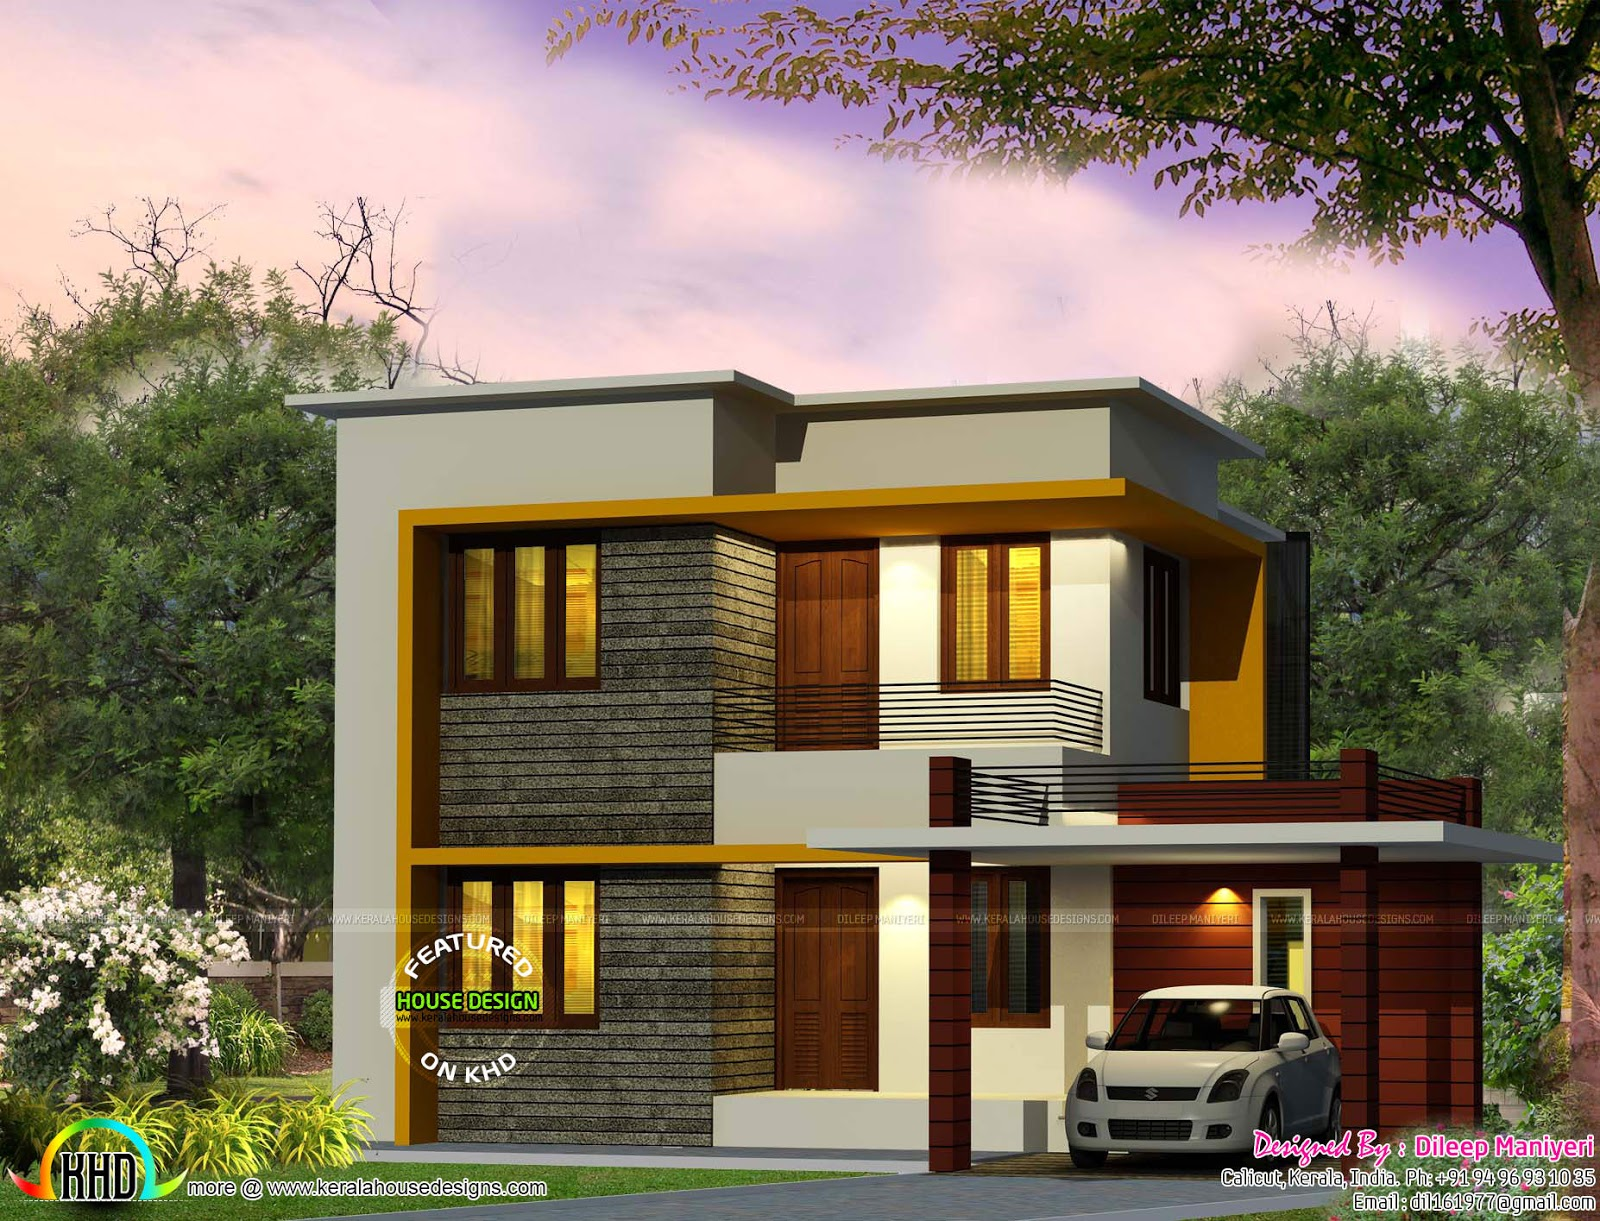 Cute 4 bedroom modern house 1670 sq ft kerala home for 4 bedroom modern house plans